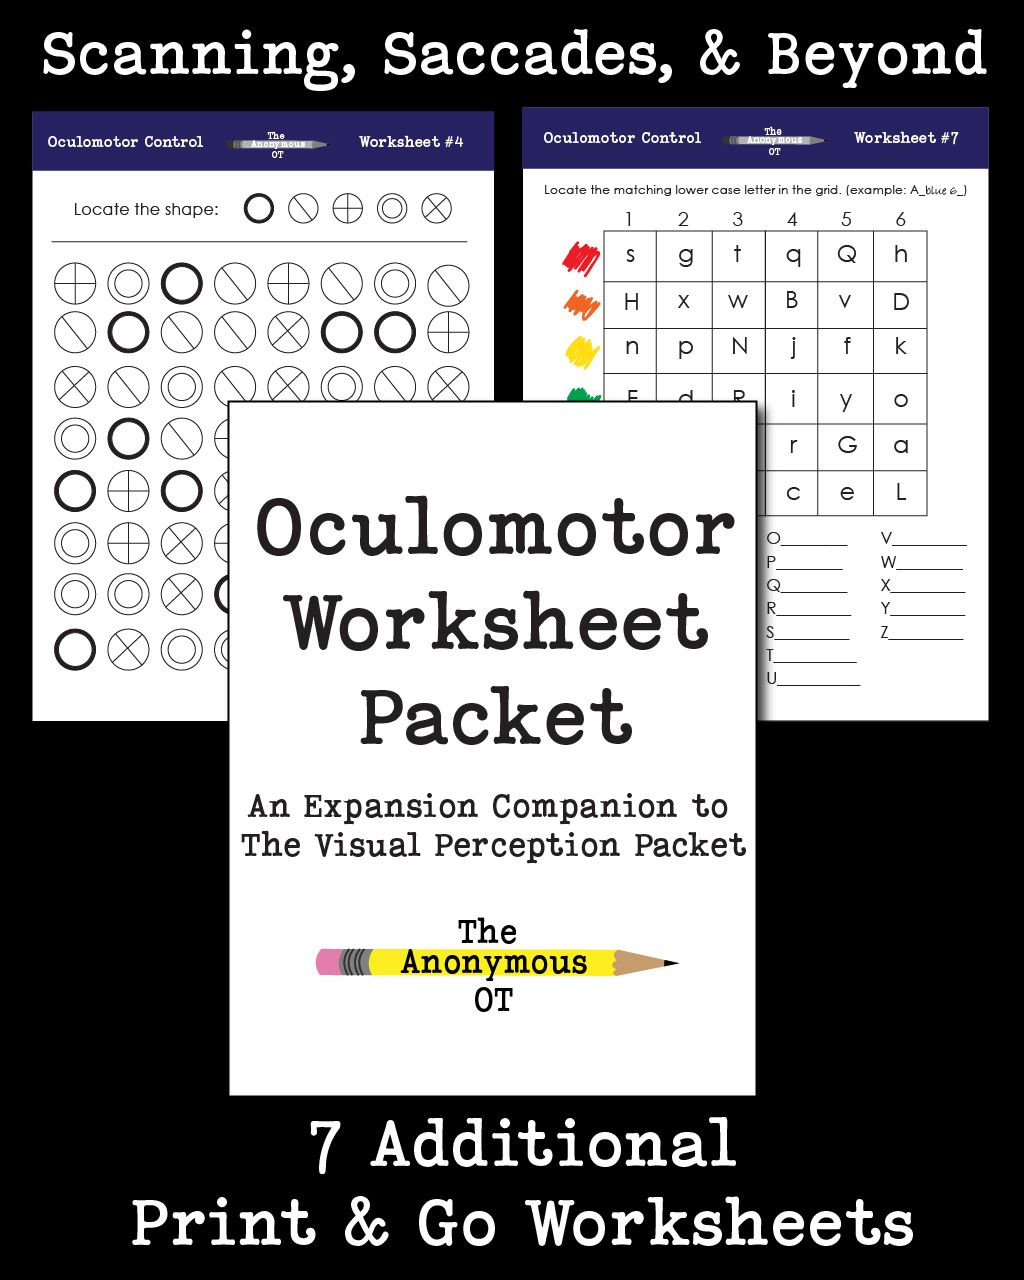 Oculomotor Worksheet Packet